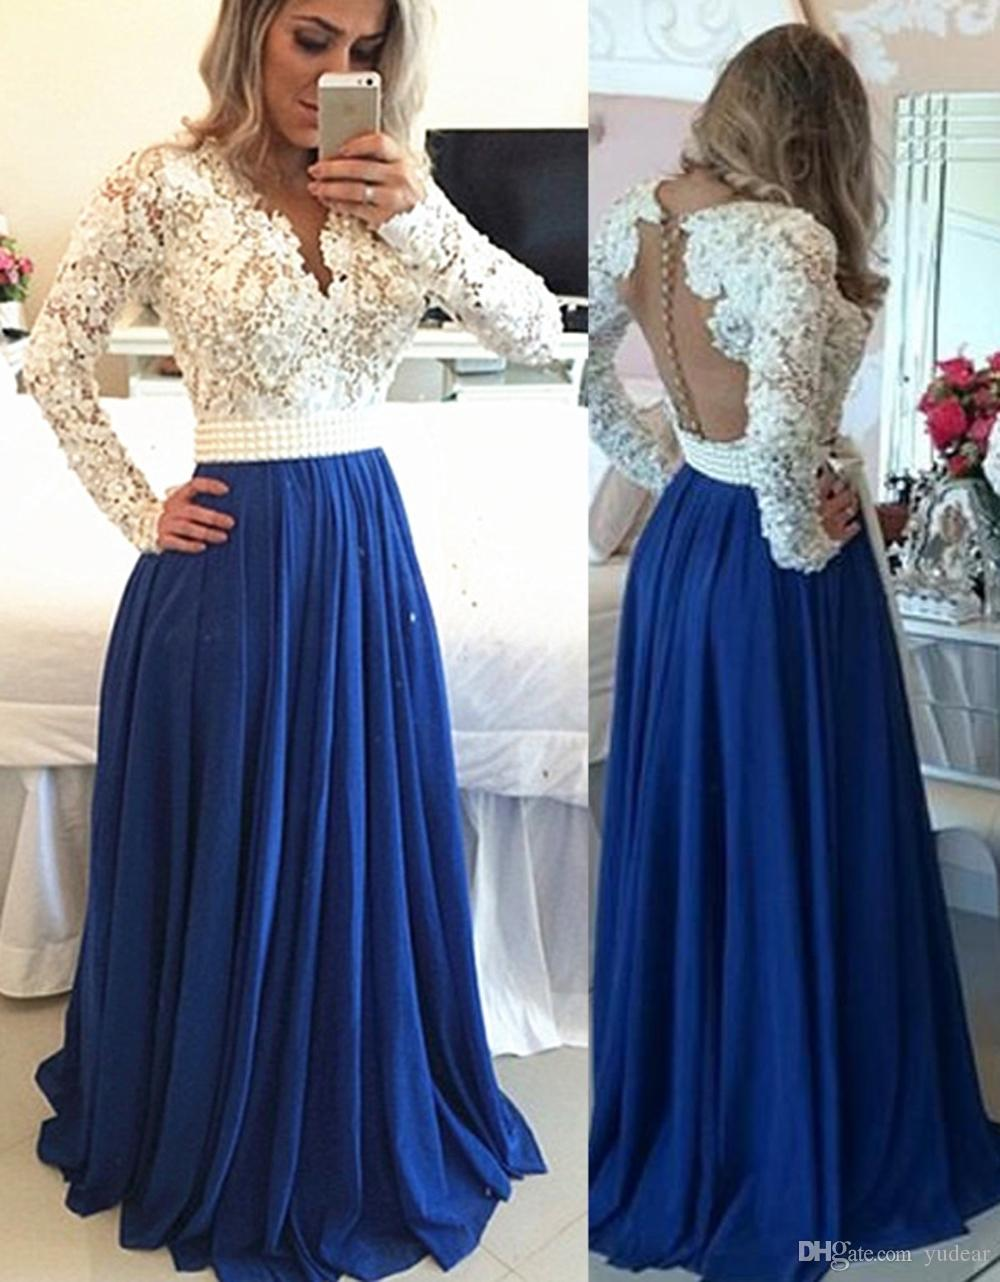 Sexy V-neck 2019 Women Evening Dresses Appliques Pearl Long Sleeves Prom Dresses A-line Sweep Train See Through Back Covered Button for Prom